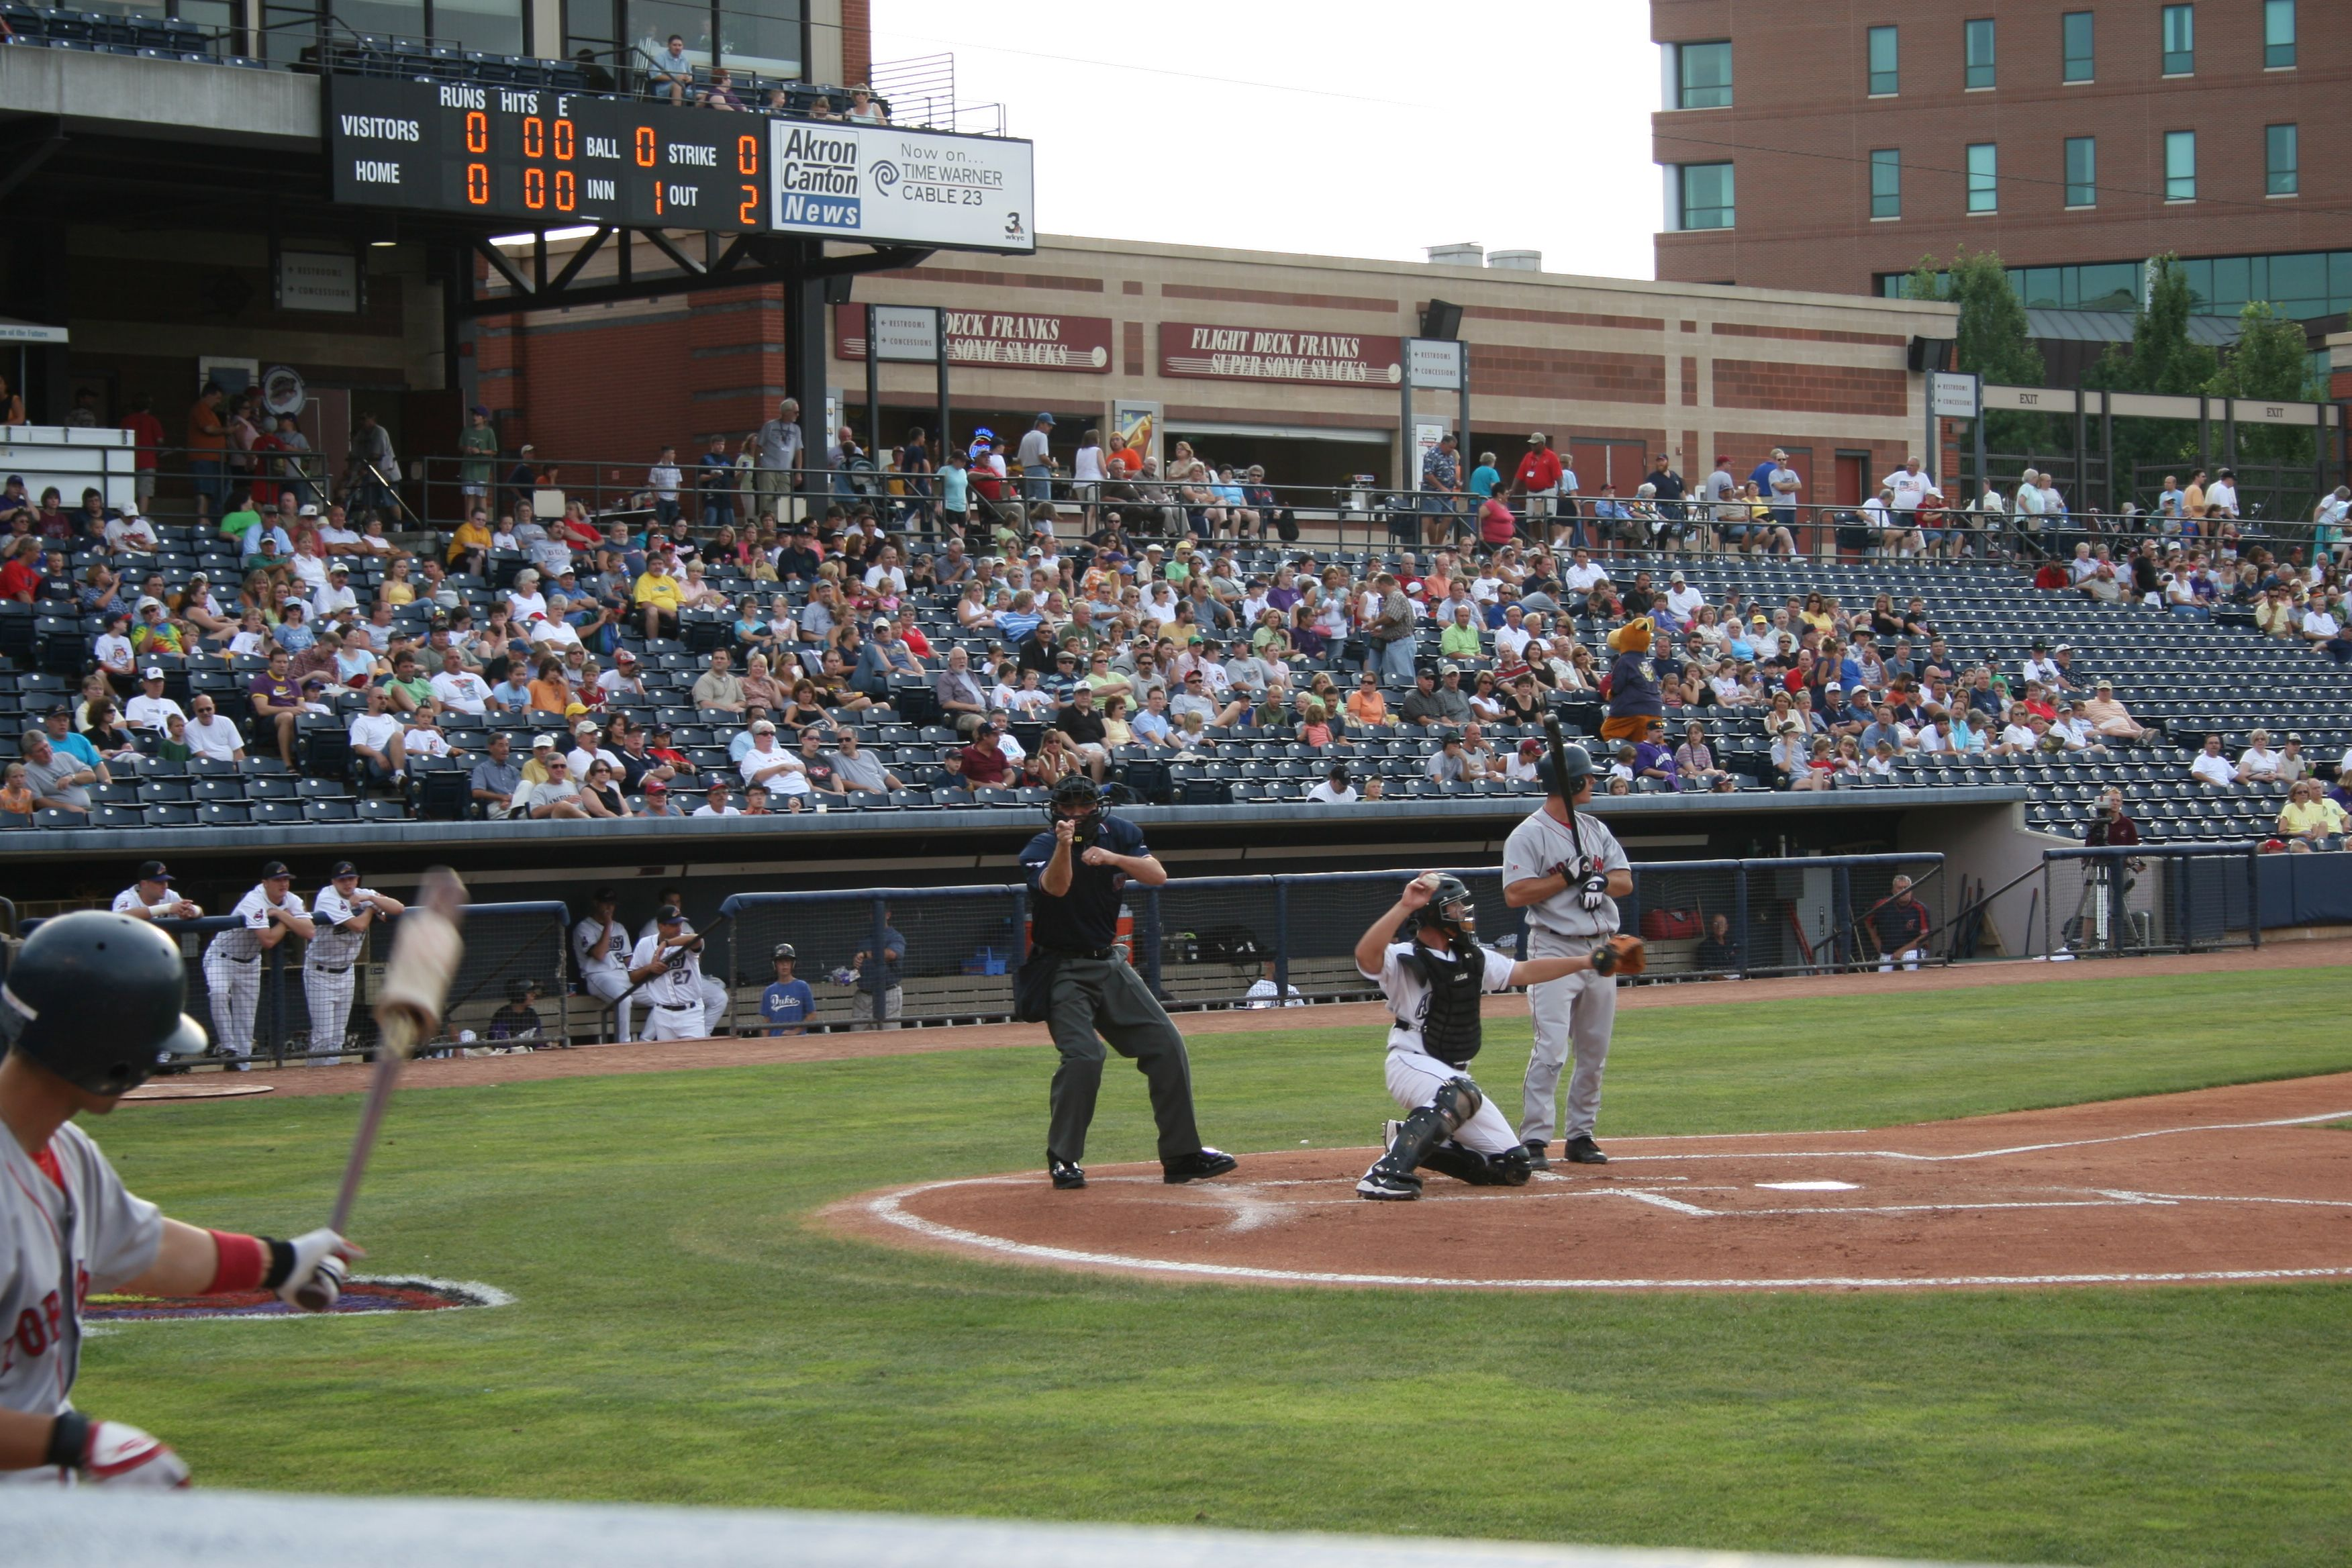 Canal Park In Akron Oh Home Of The Akron Aeros Aa Farm Club Of The Cleveland Indians Cleveland Indians Akron Baseball Field